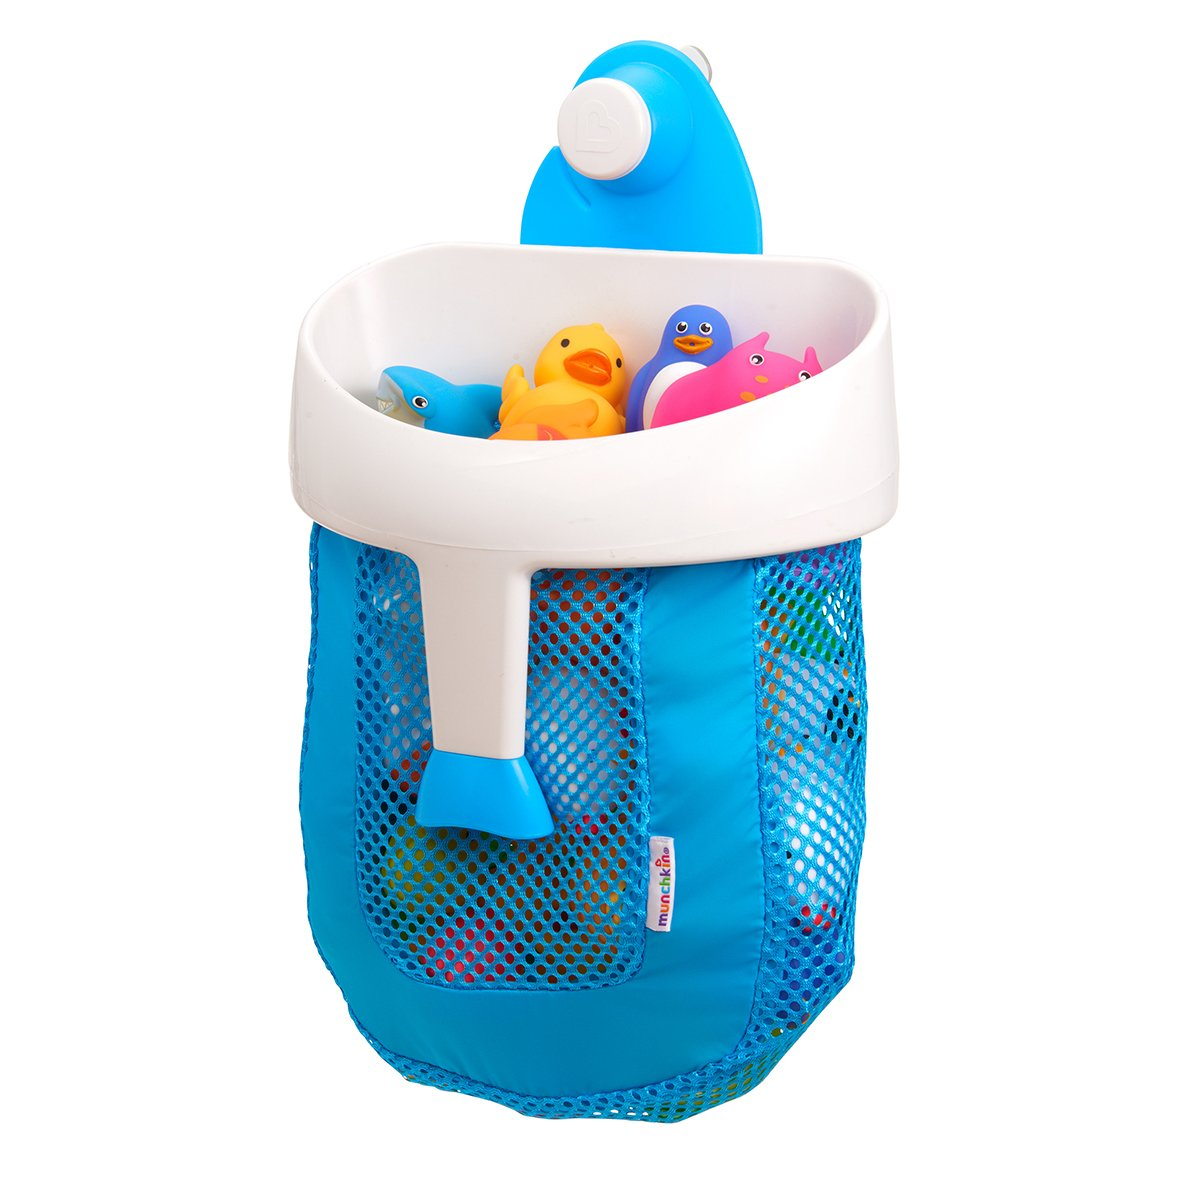 Munchkin Super Scoop Bath Toy Organiser 012399WWW